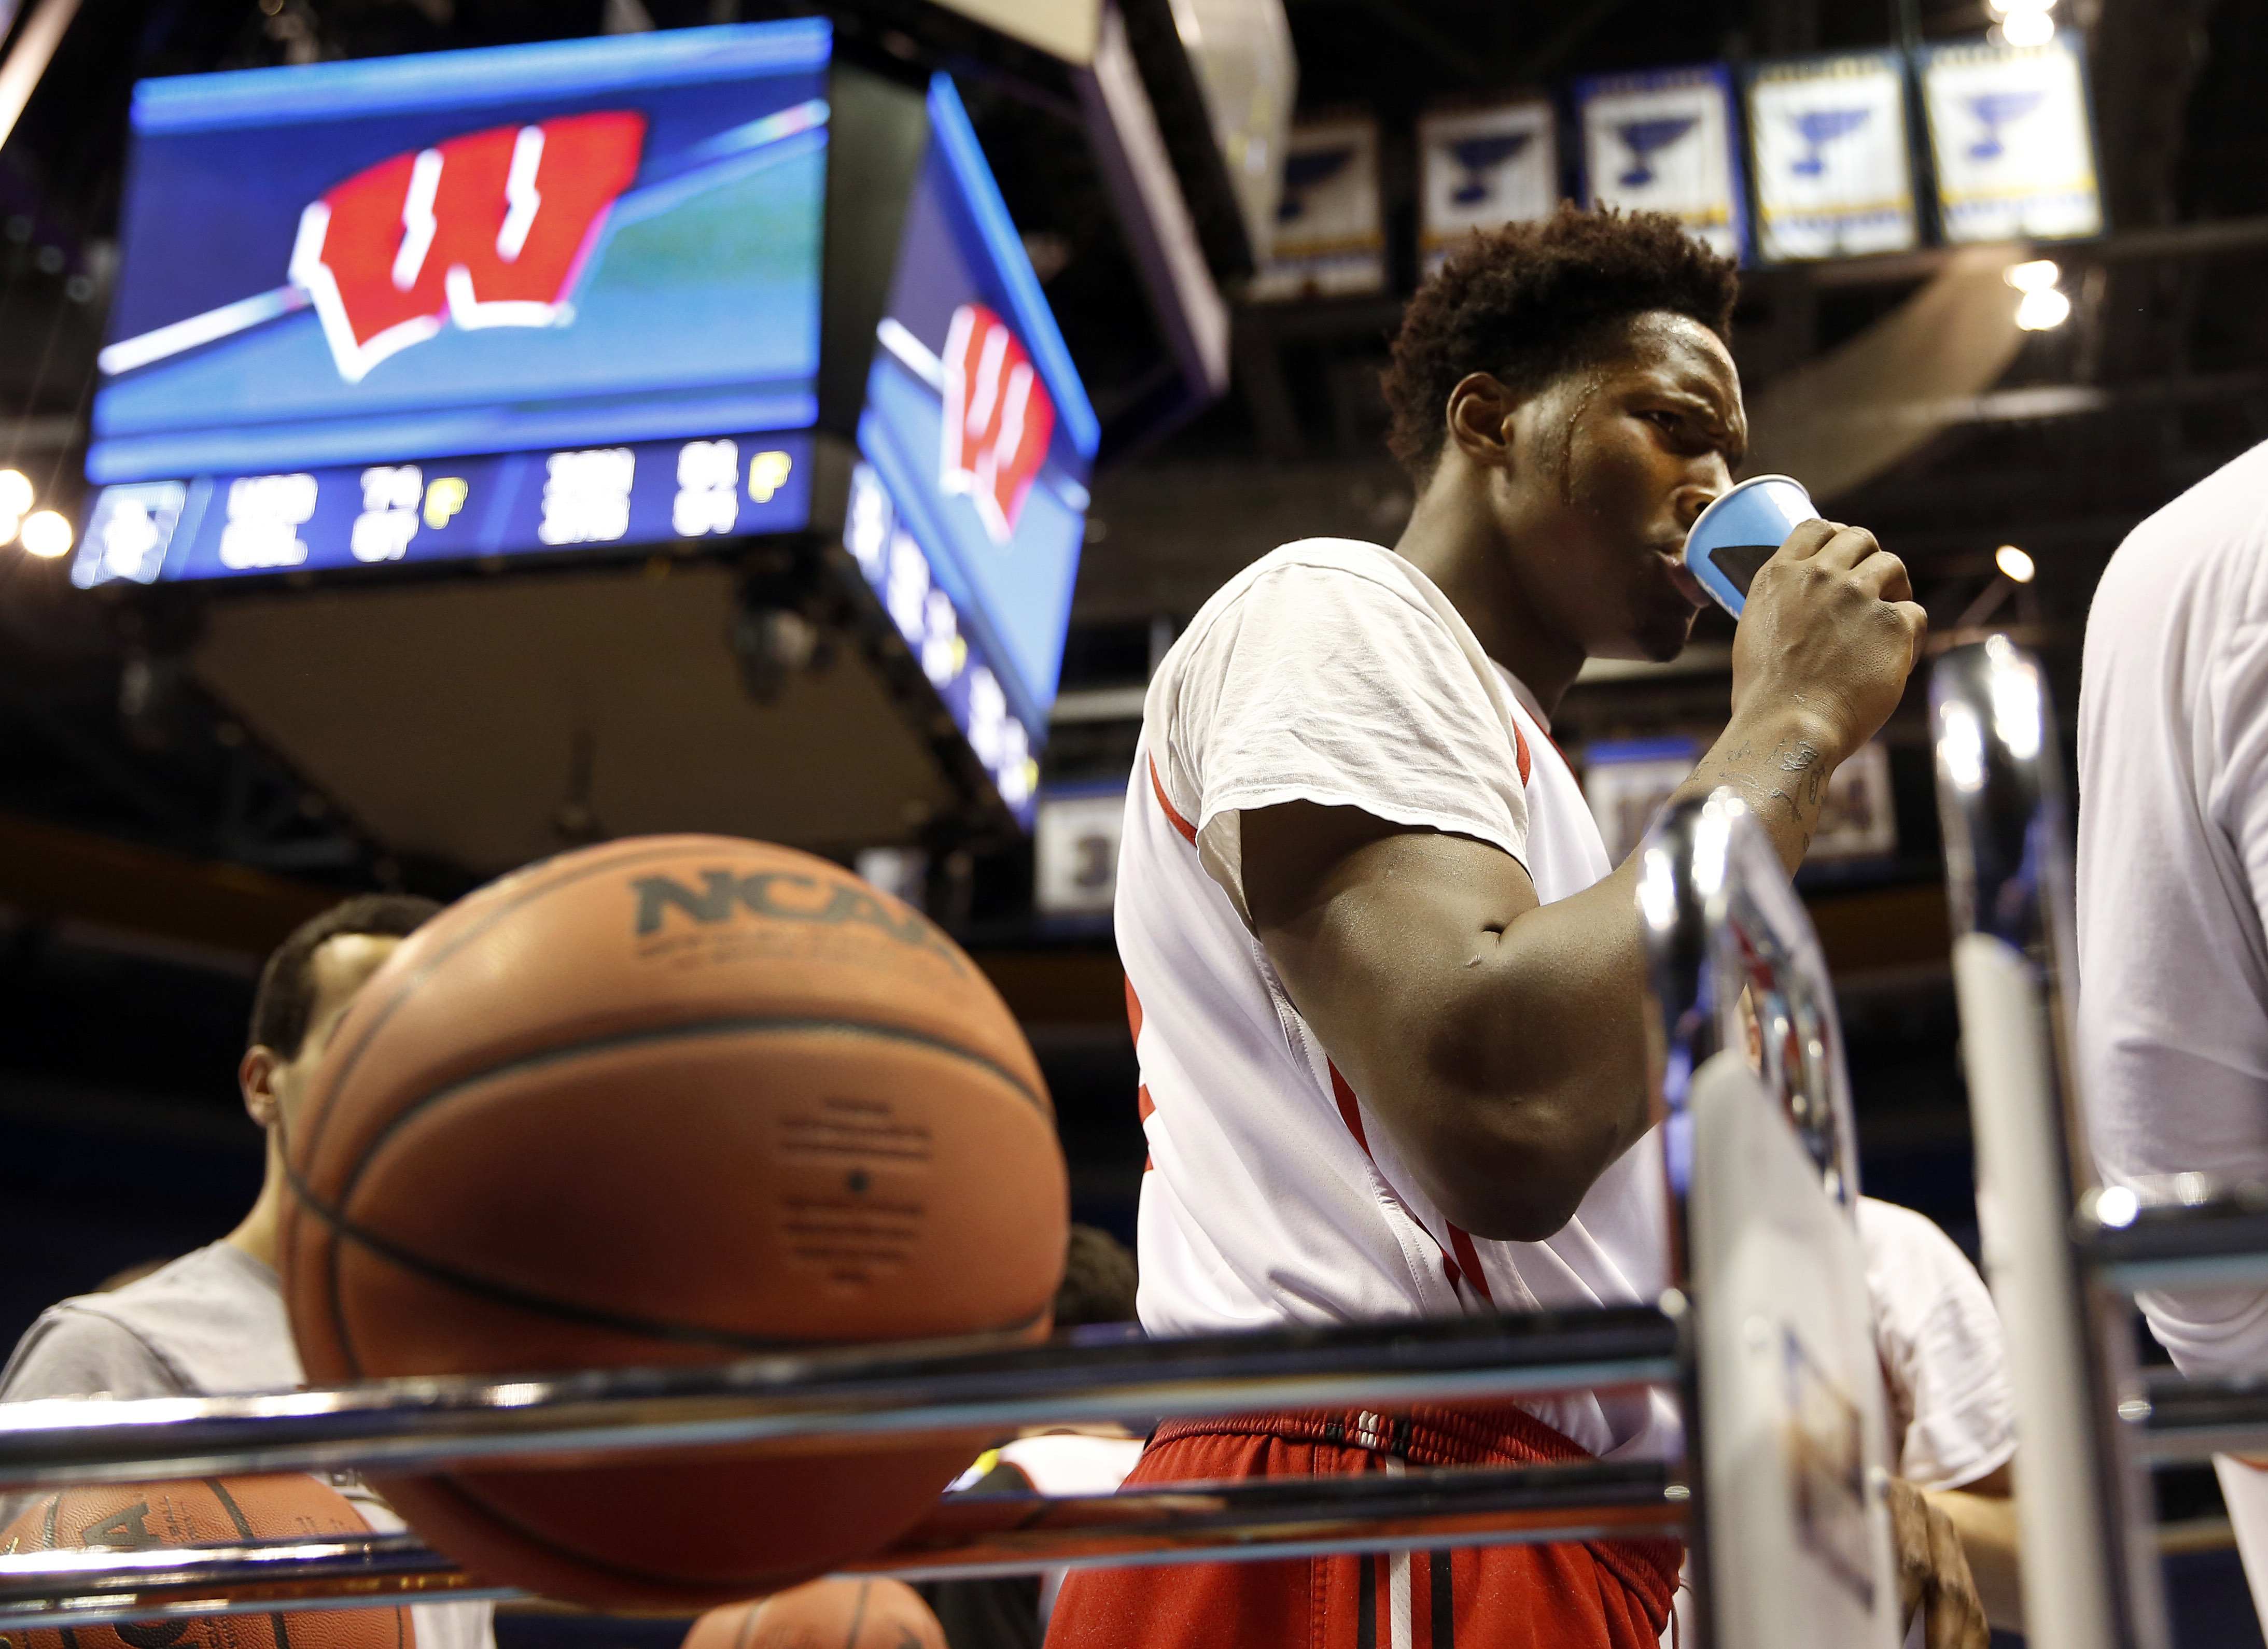 Wisconsin's Nigel Hayes pauses for a drink during practice ahead of a first-round men's college basketball game in the NCAA Tournament on Thursday, March 17, 2016, in St. Louis. Wisconsin plays Pittsburgh on Friday. (AP Photo/Jeff Roberson)